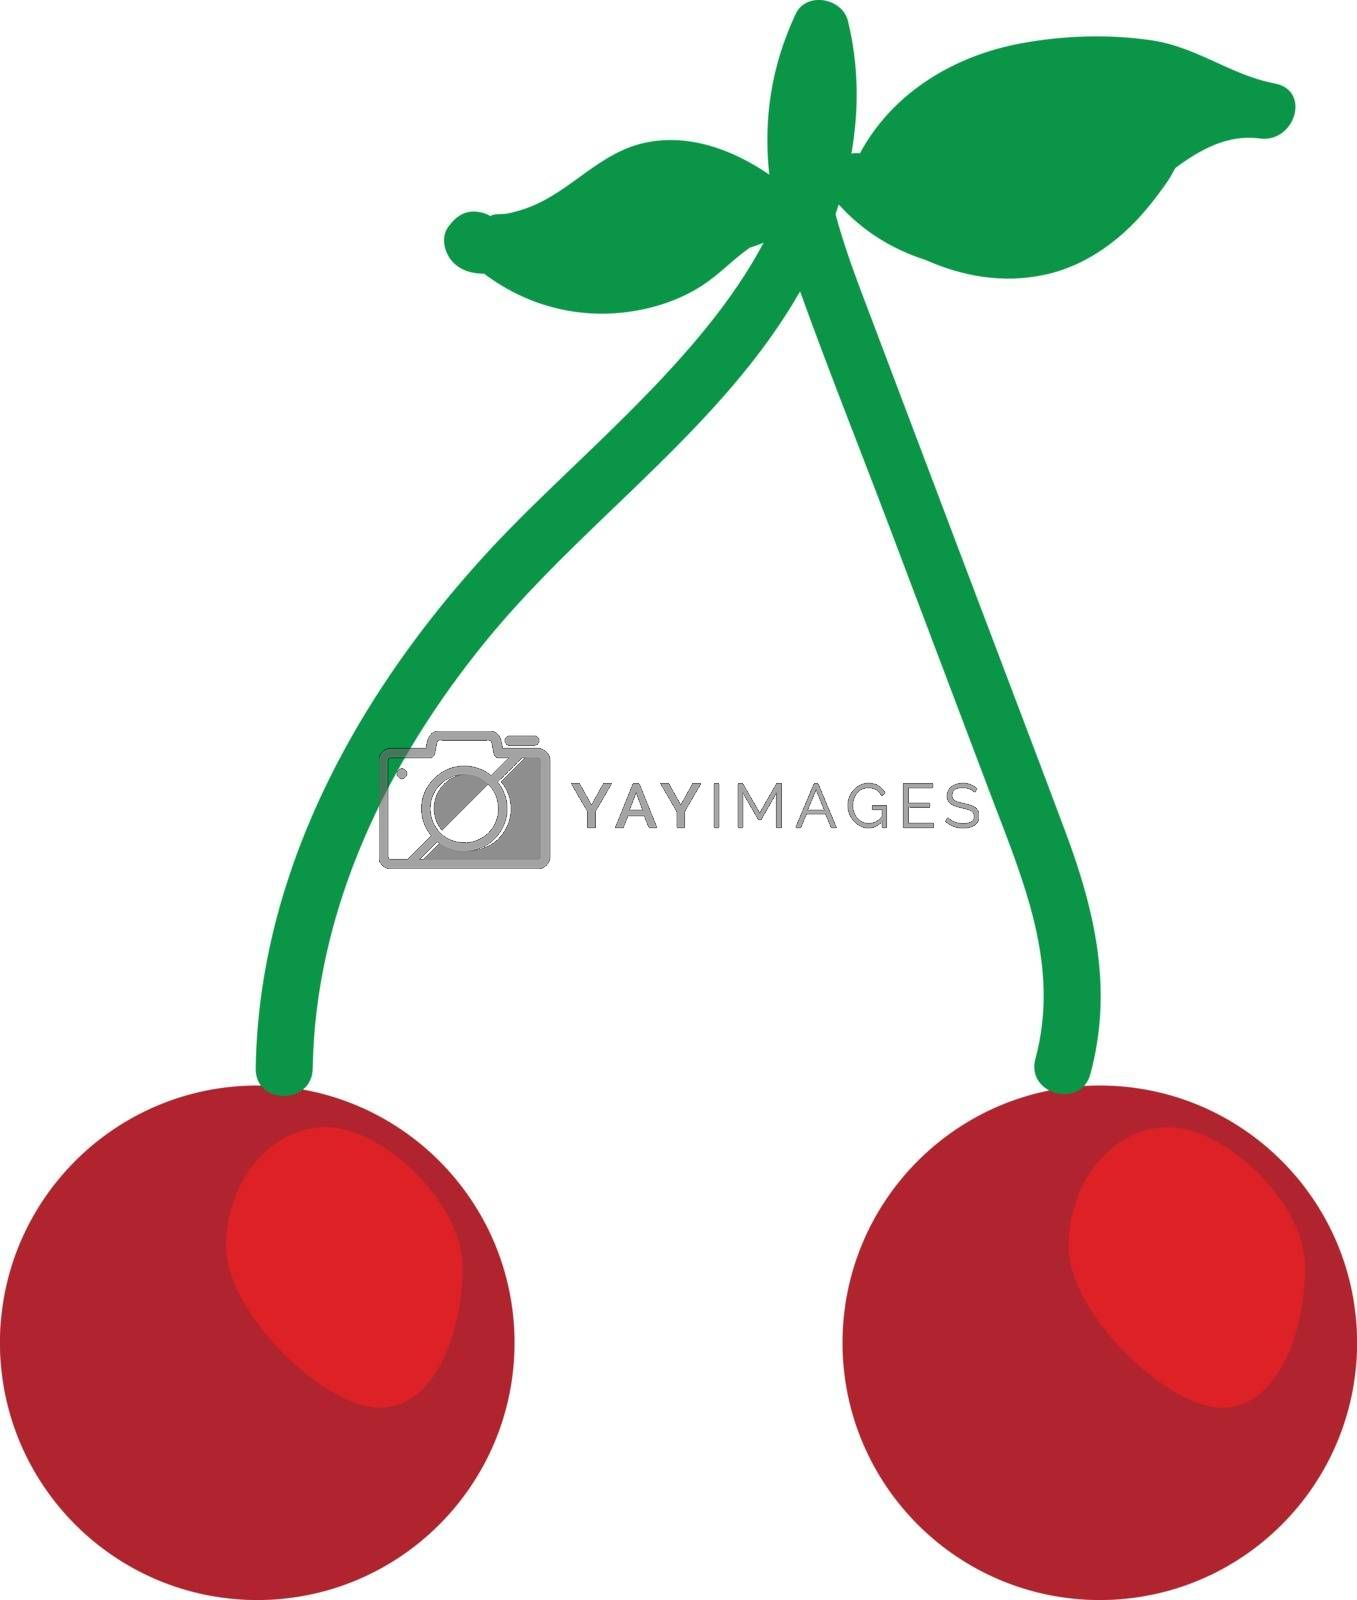 Royalty free image of Pair of red cherries with leaves illustration vector on white ba by Morphart